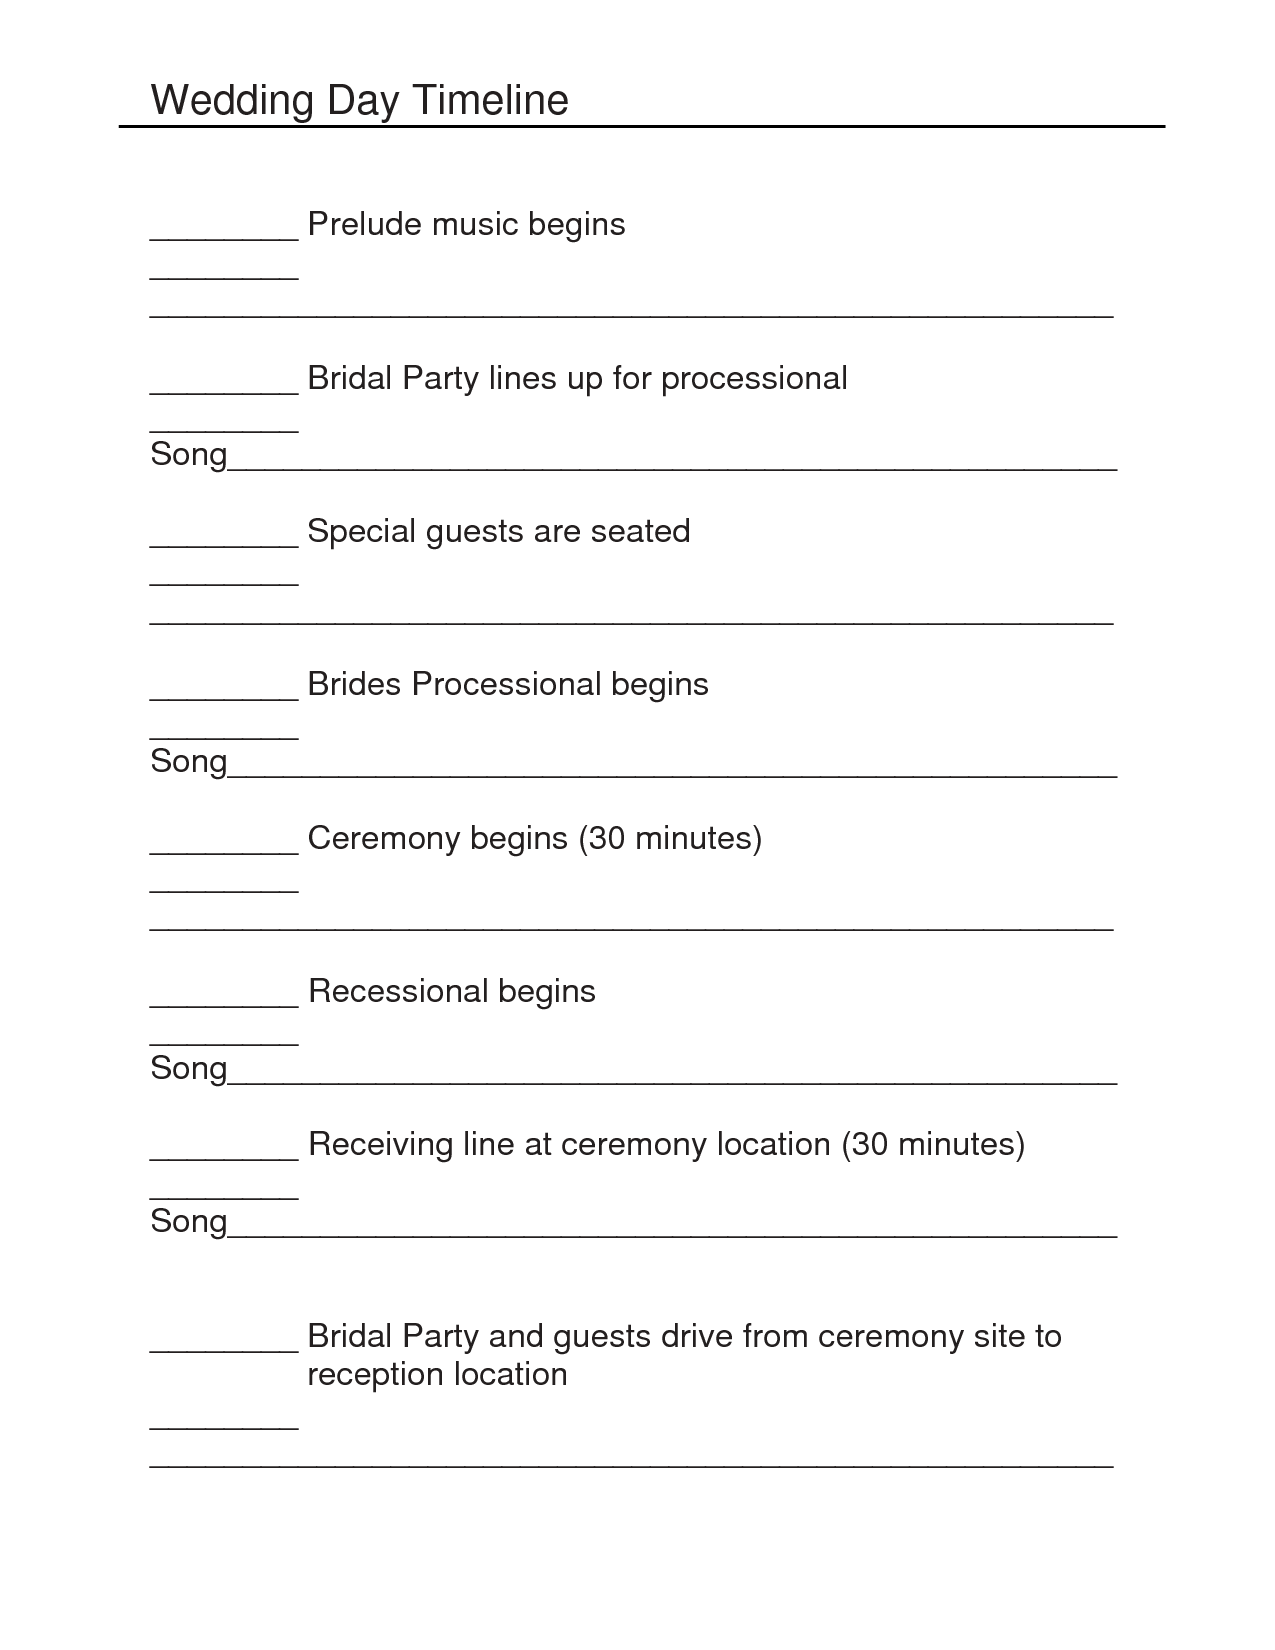 Outline For Formal Wedding Itinerary  Wedding Wednesday The